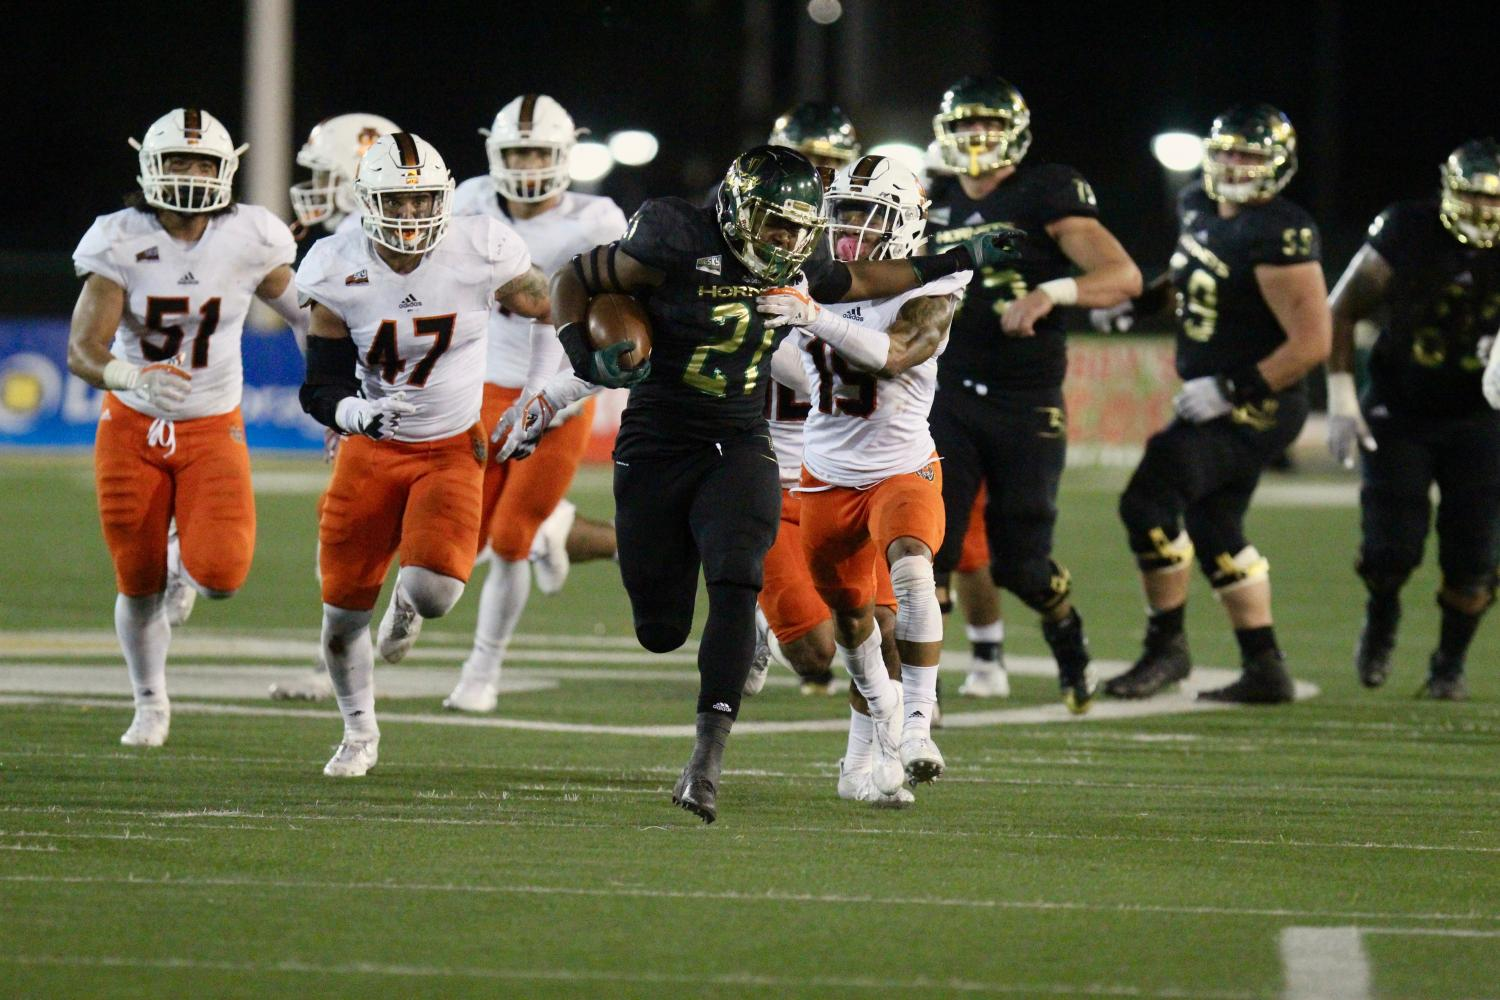 Sacramento State freshman running back BJ Perkinson tries to break a tackle against Idaho State Saturday, Oct. 15 at Hornet Stadium. Perkinson finished with a game-high 155 rushing yards and his first career touchdown in a 41-21 homecoming win over the Bengals.